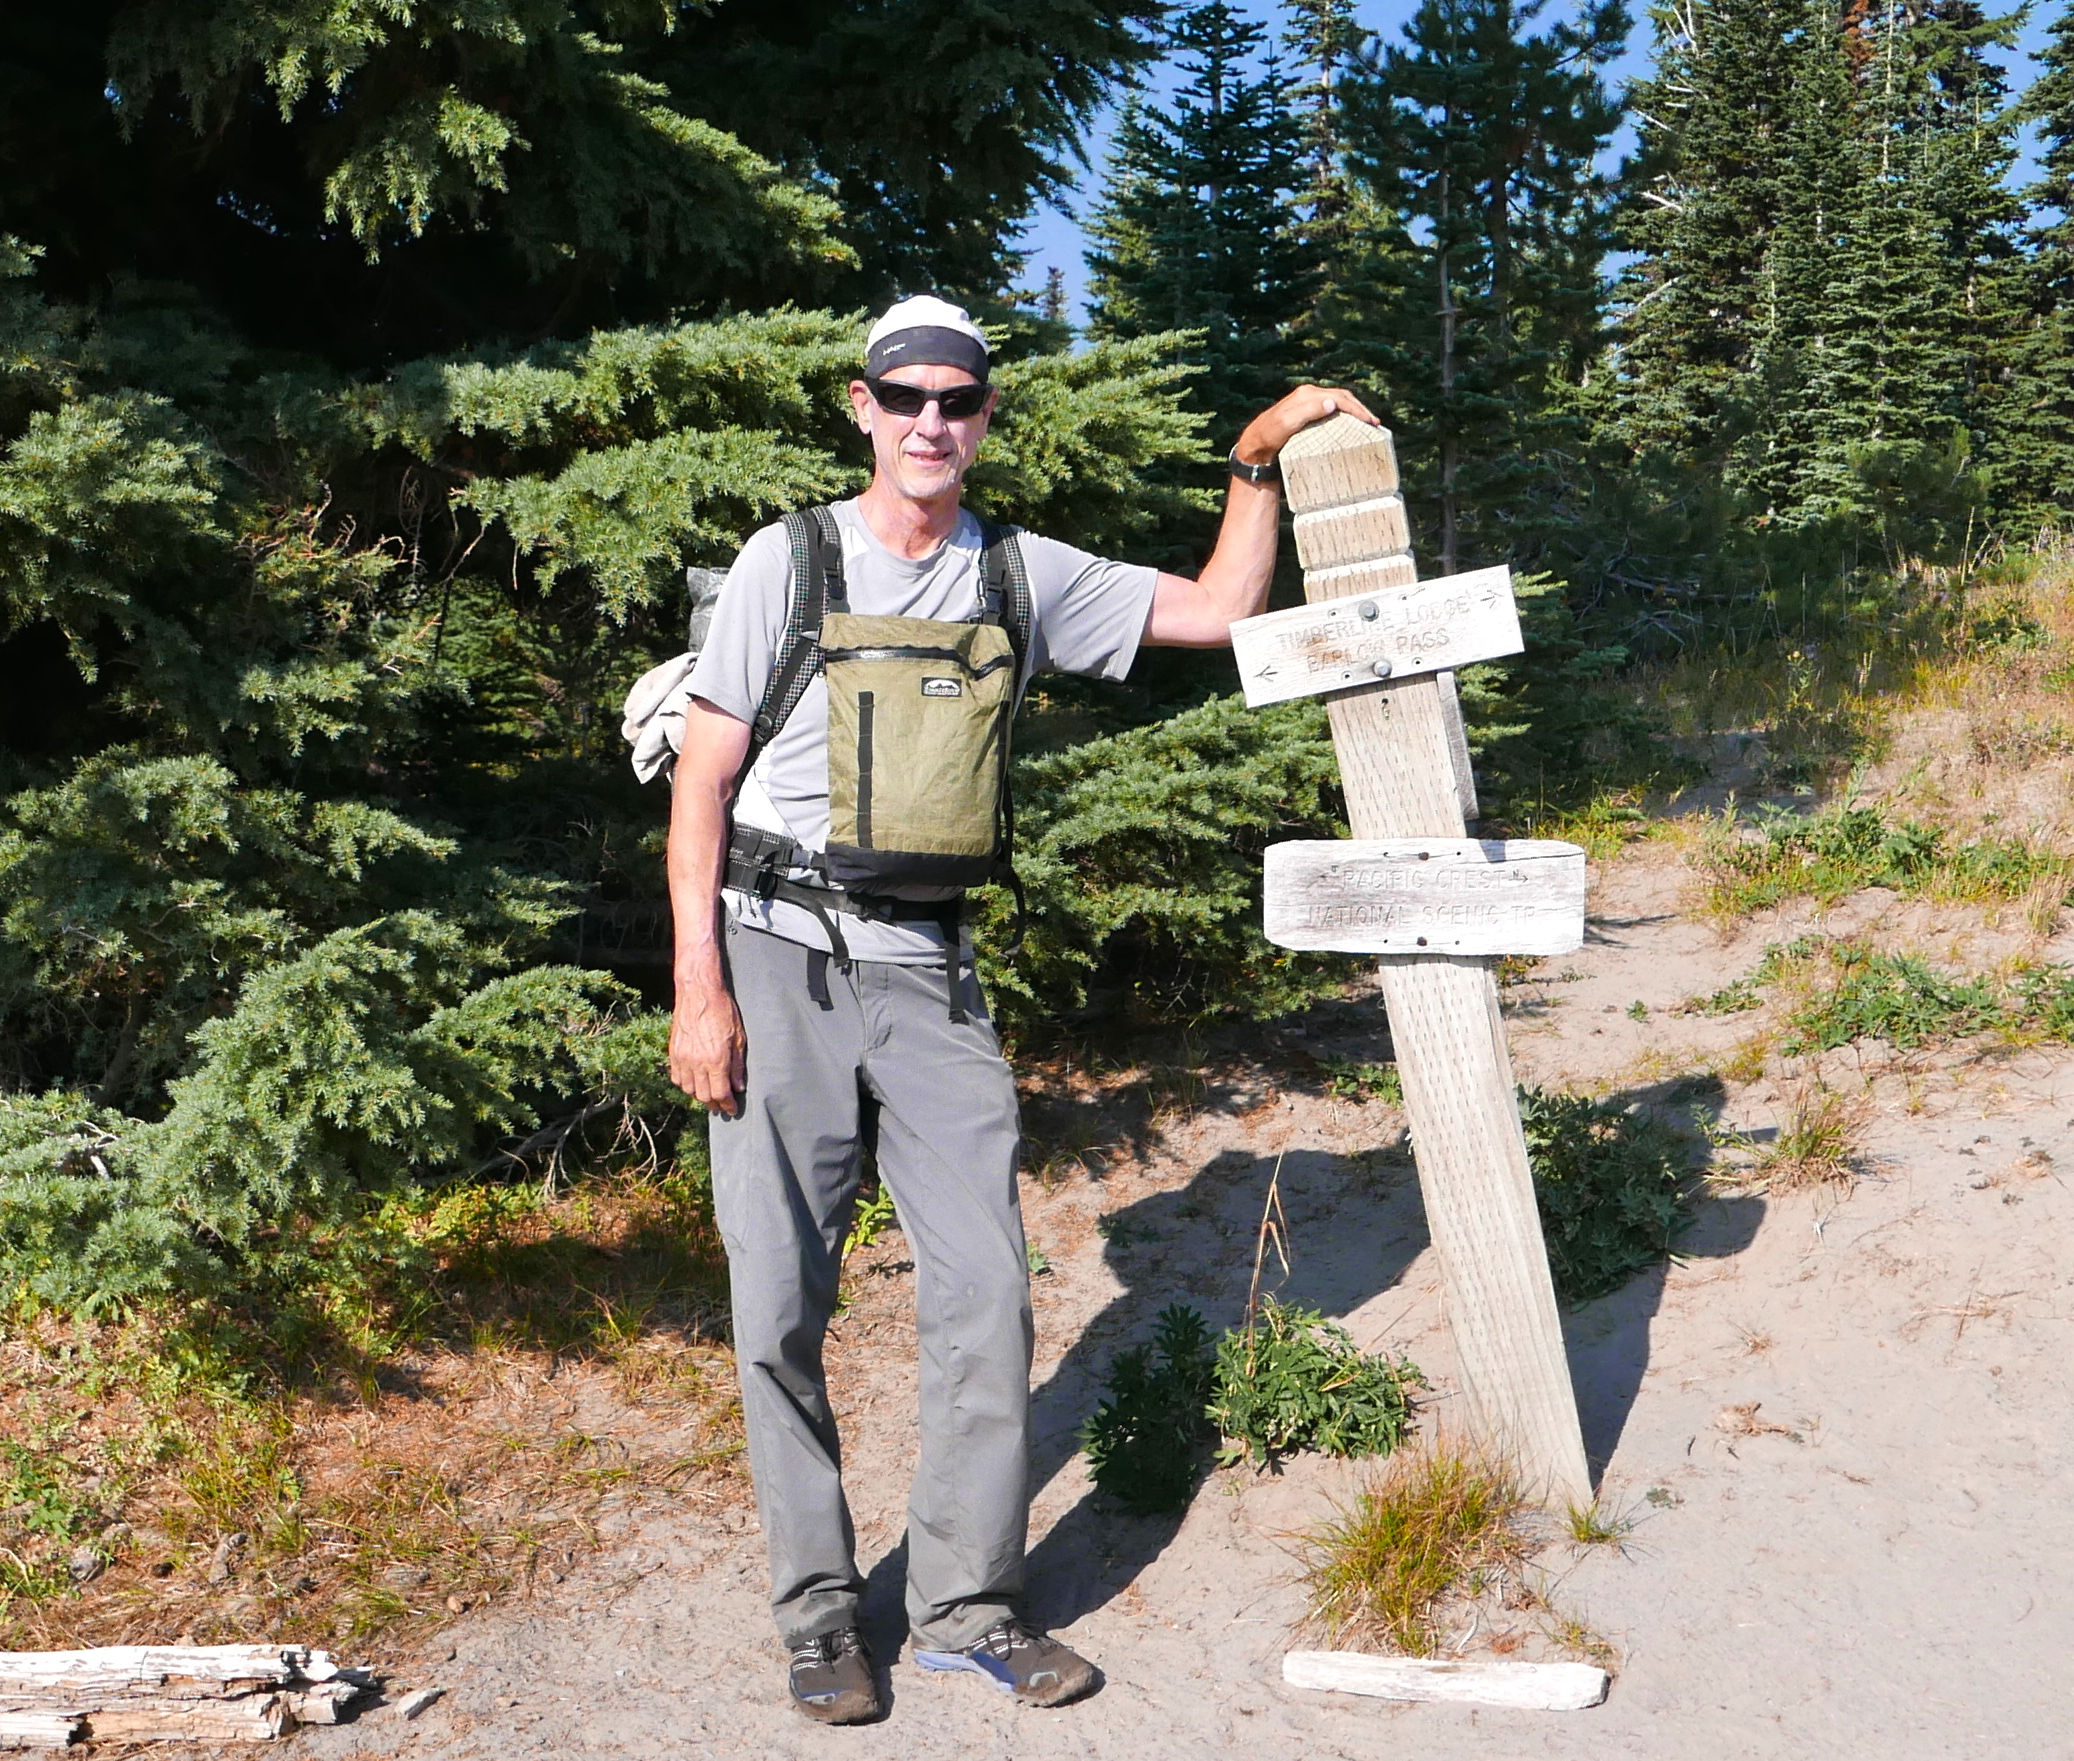 Zimmerbuilt packs on the Timberline Trail